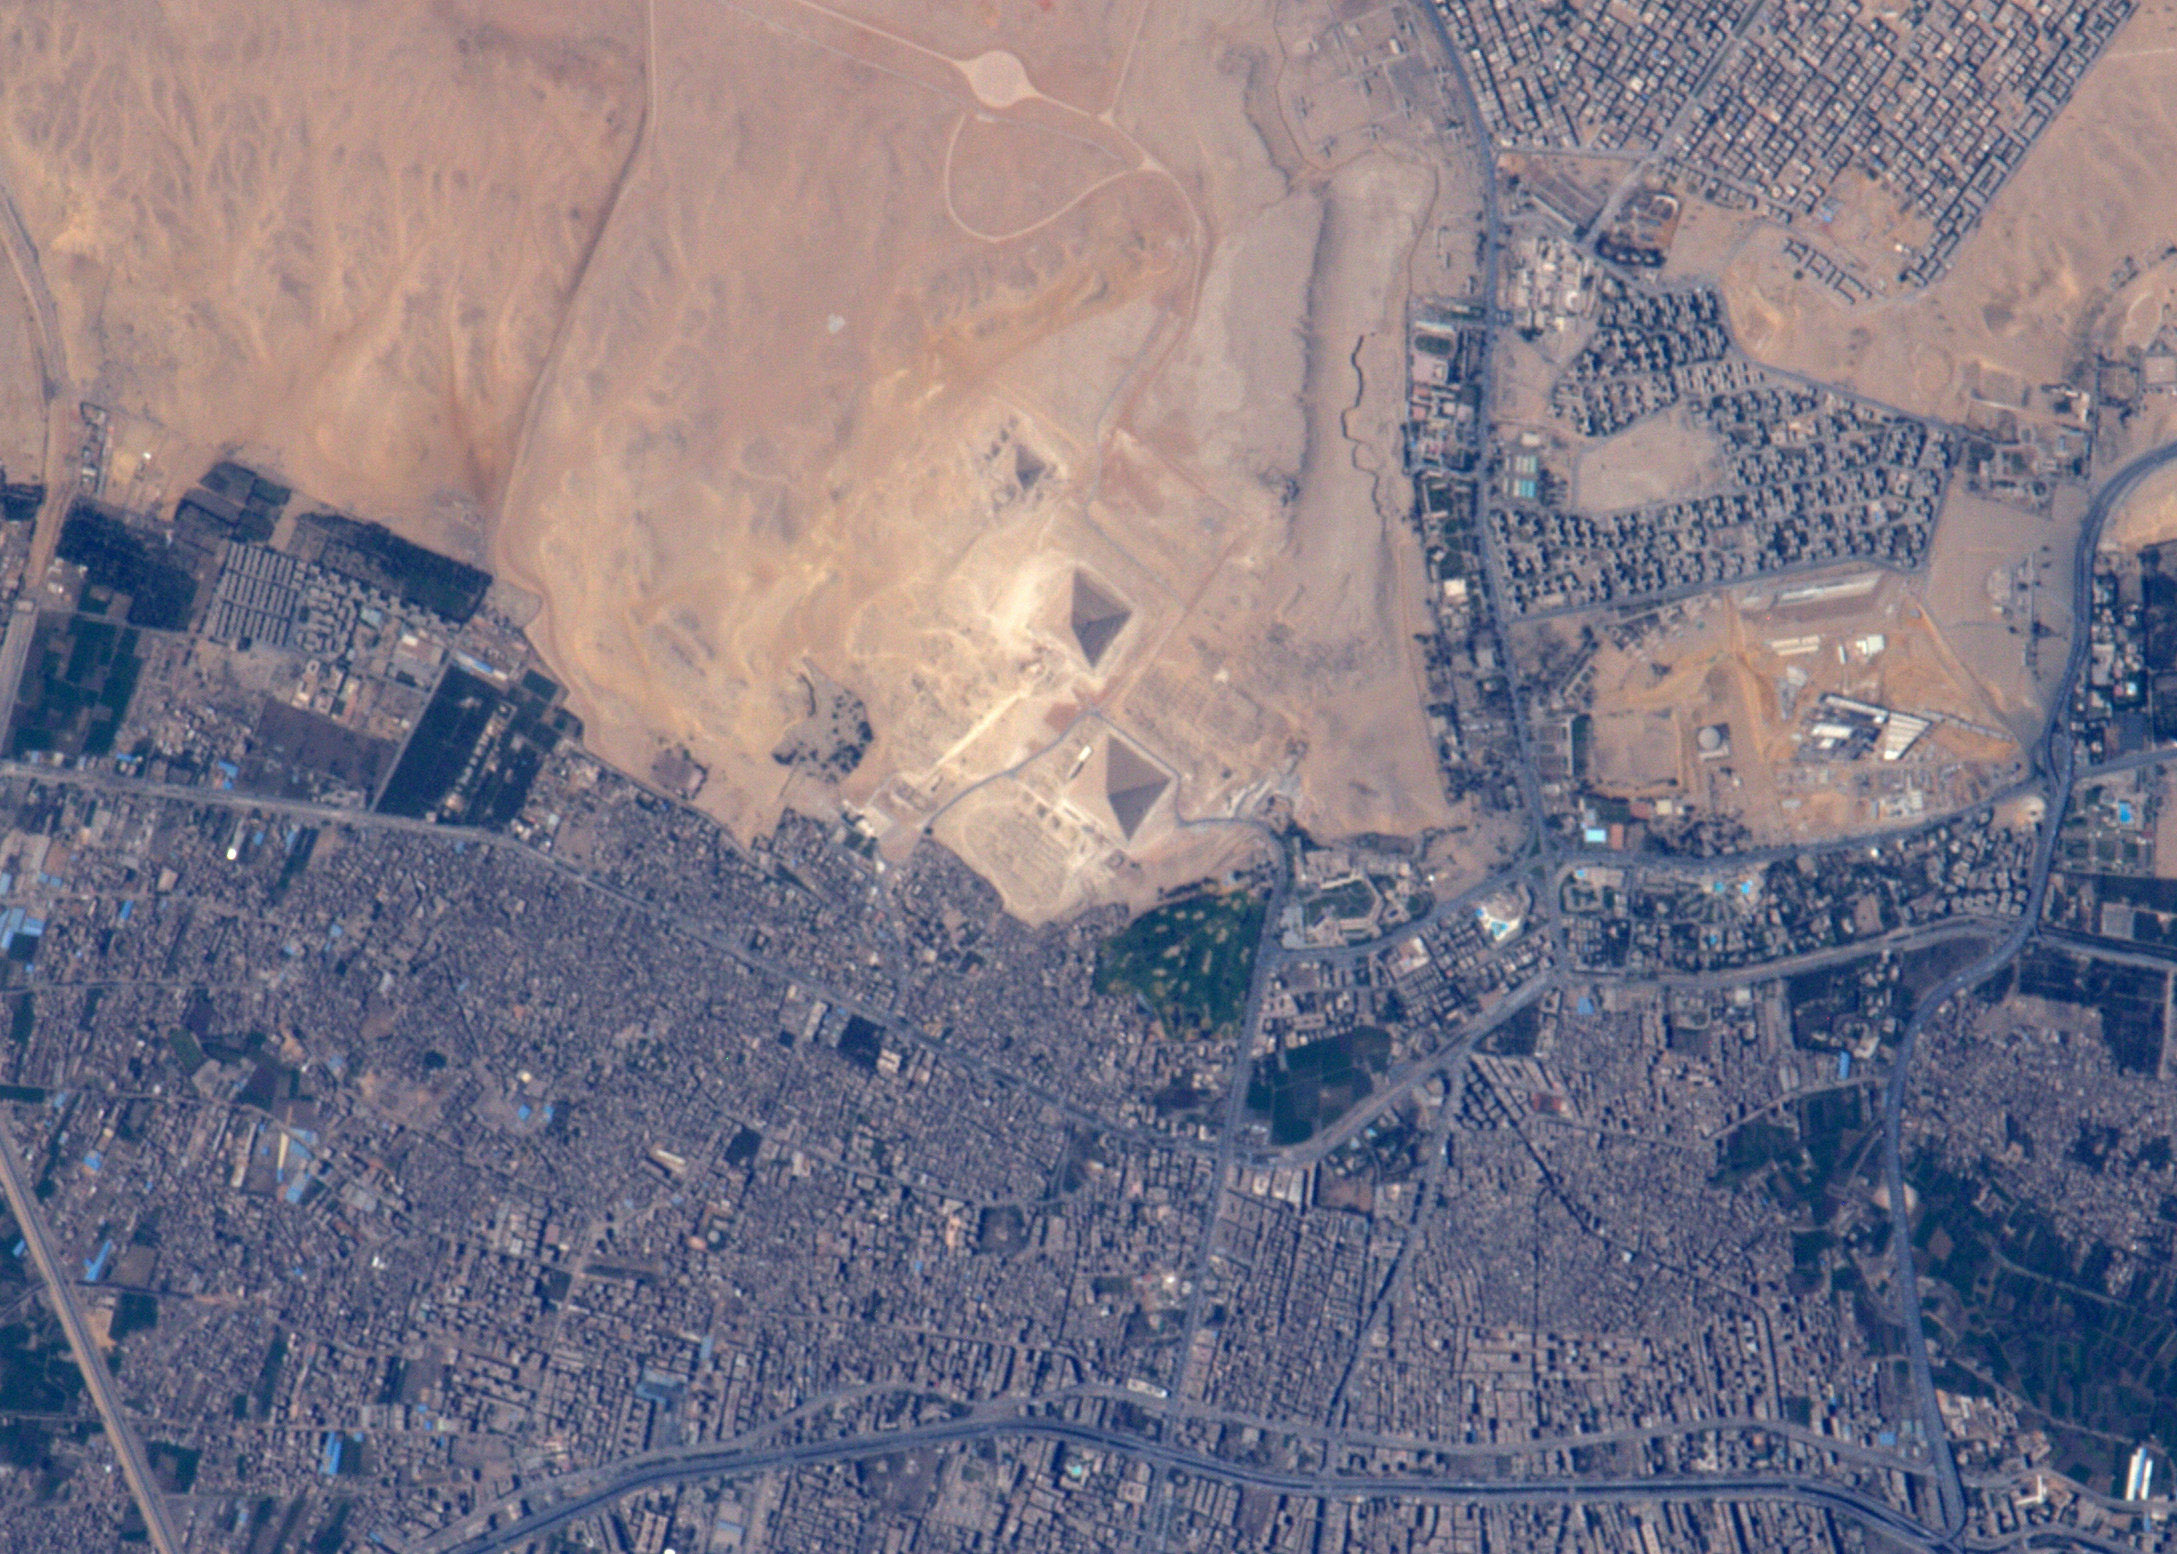 The Giza pyramids on the outskirts of Cairo, Egypt, April 19, 2016.